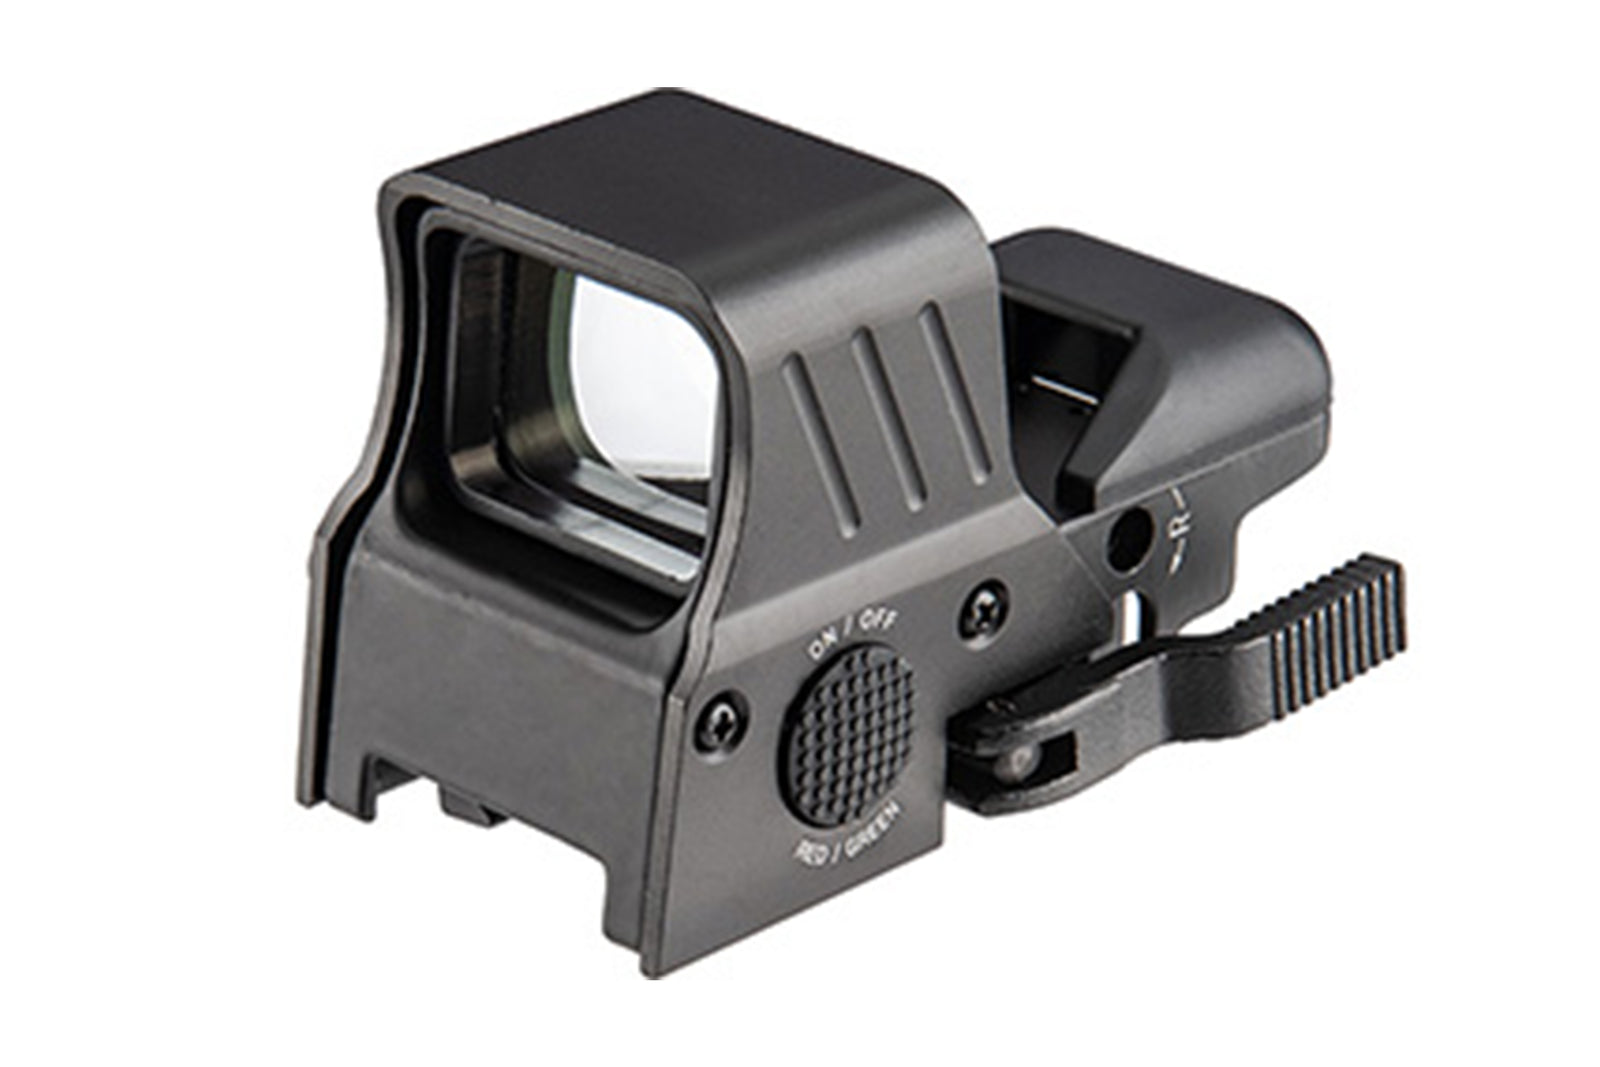 Lancer Tactical - 4 Reticle Red/Green Dot Reflex Sight w/ QD Mount - Black